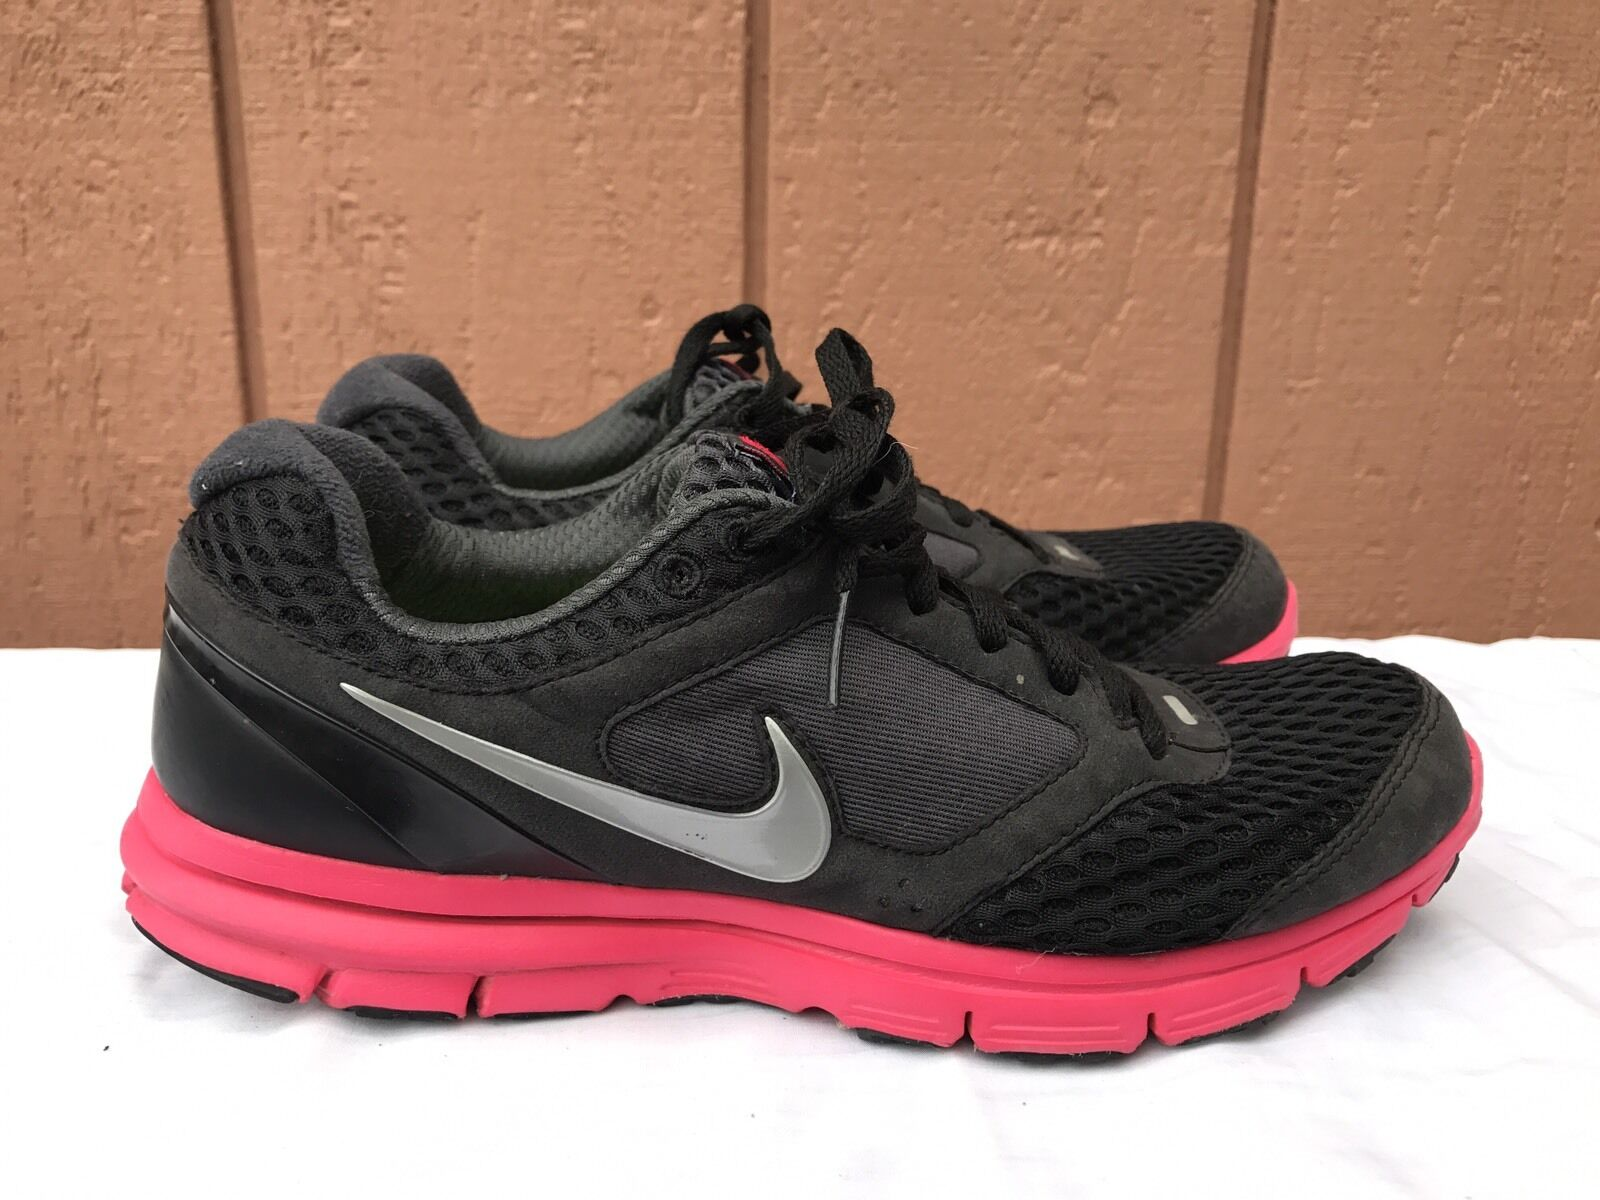 EUC NIKE WOMEN'S LUNARFLY+ 2 BREATHE SHOES US 8.5 BLACK ANTHARCITE 452418 006 best-selling model of the brand